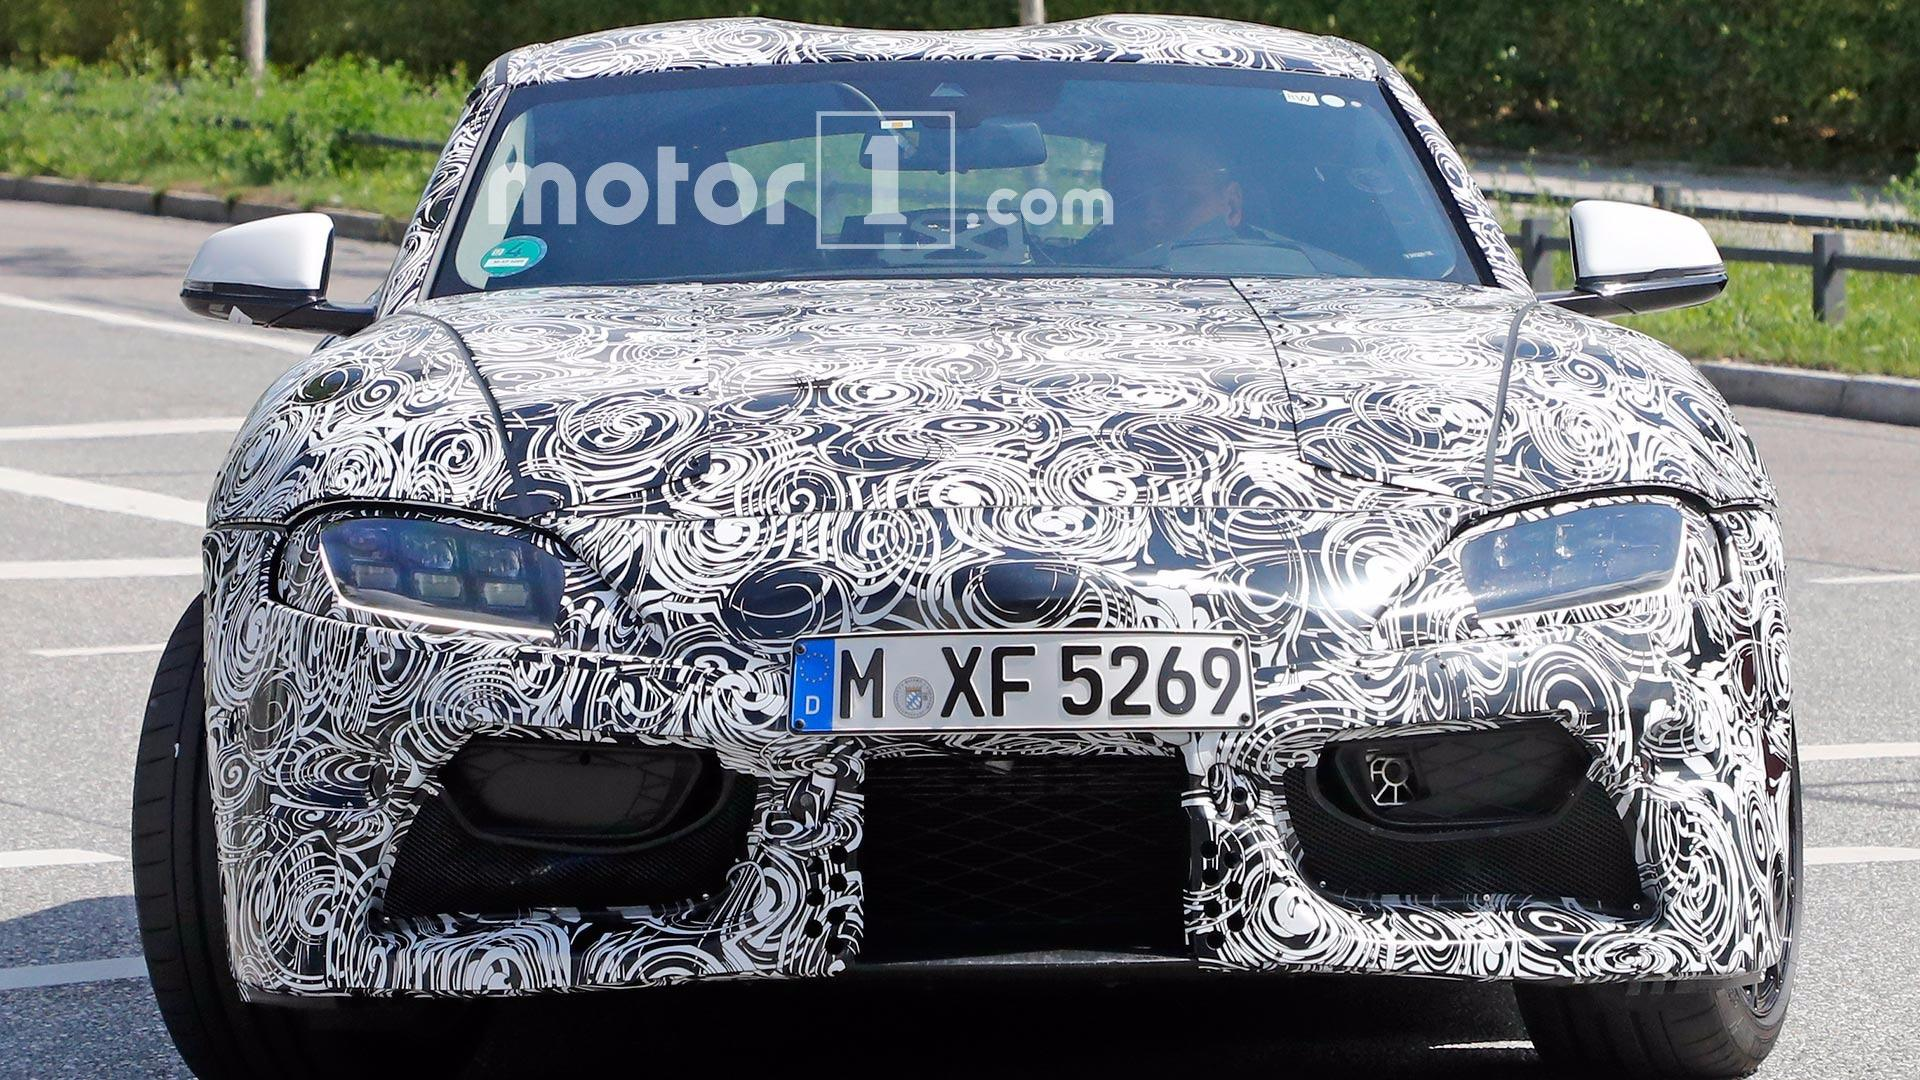 2018 Toyota Supra Spied Testing With LED Headlights